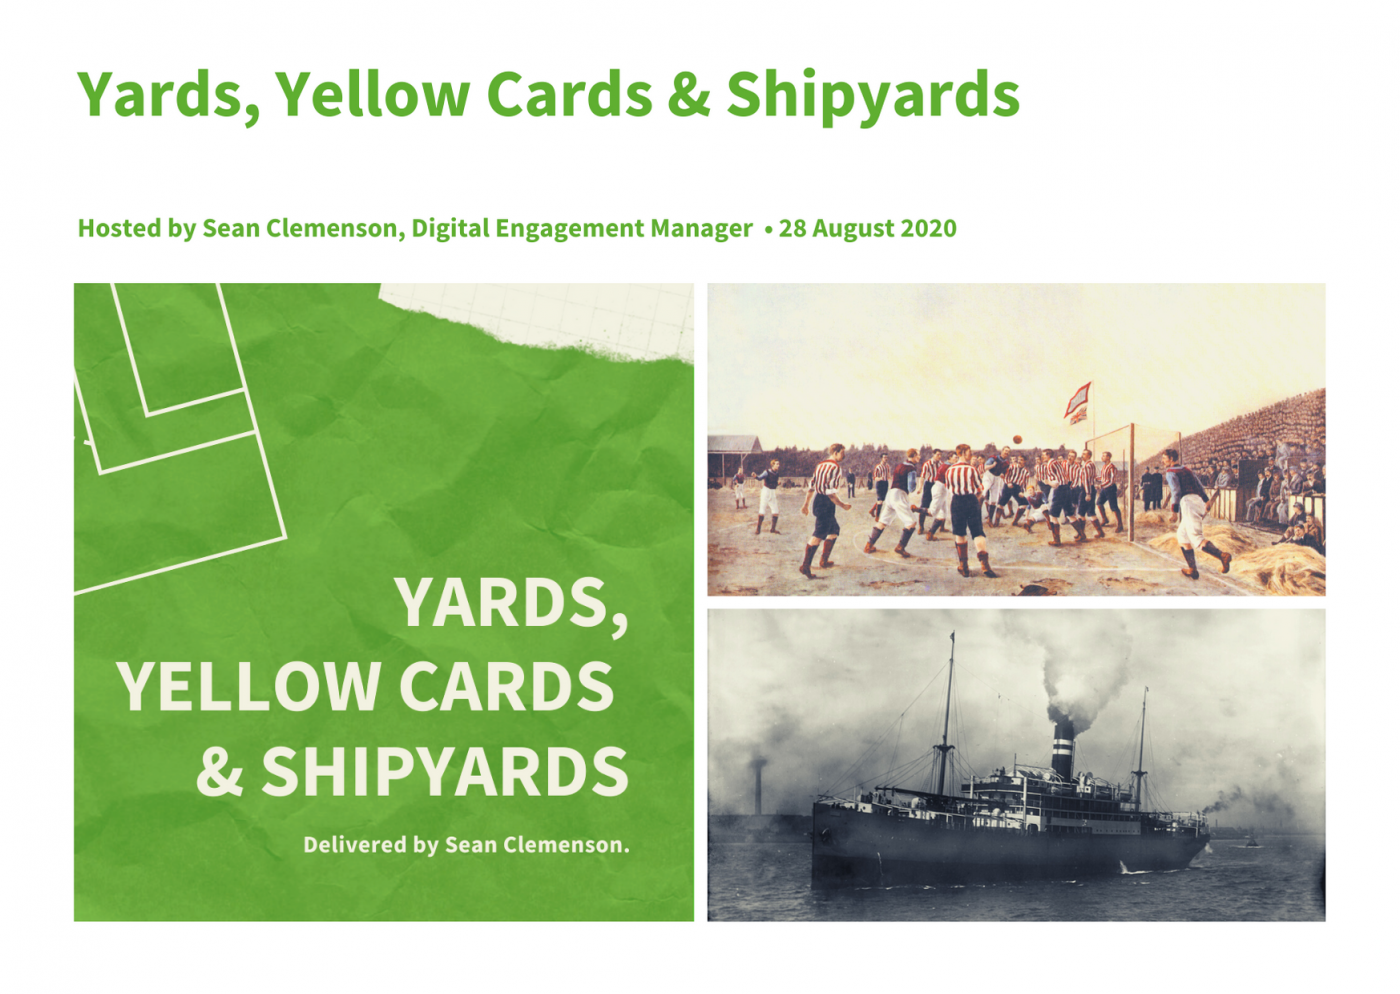 Yards Yellow Cards Shipyards webinar overview